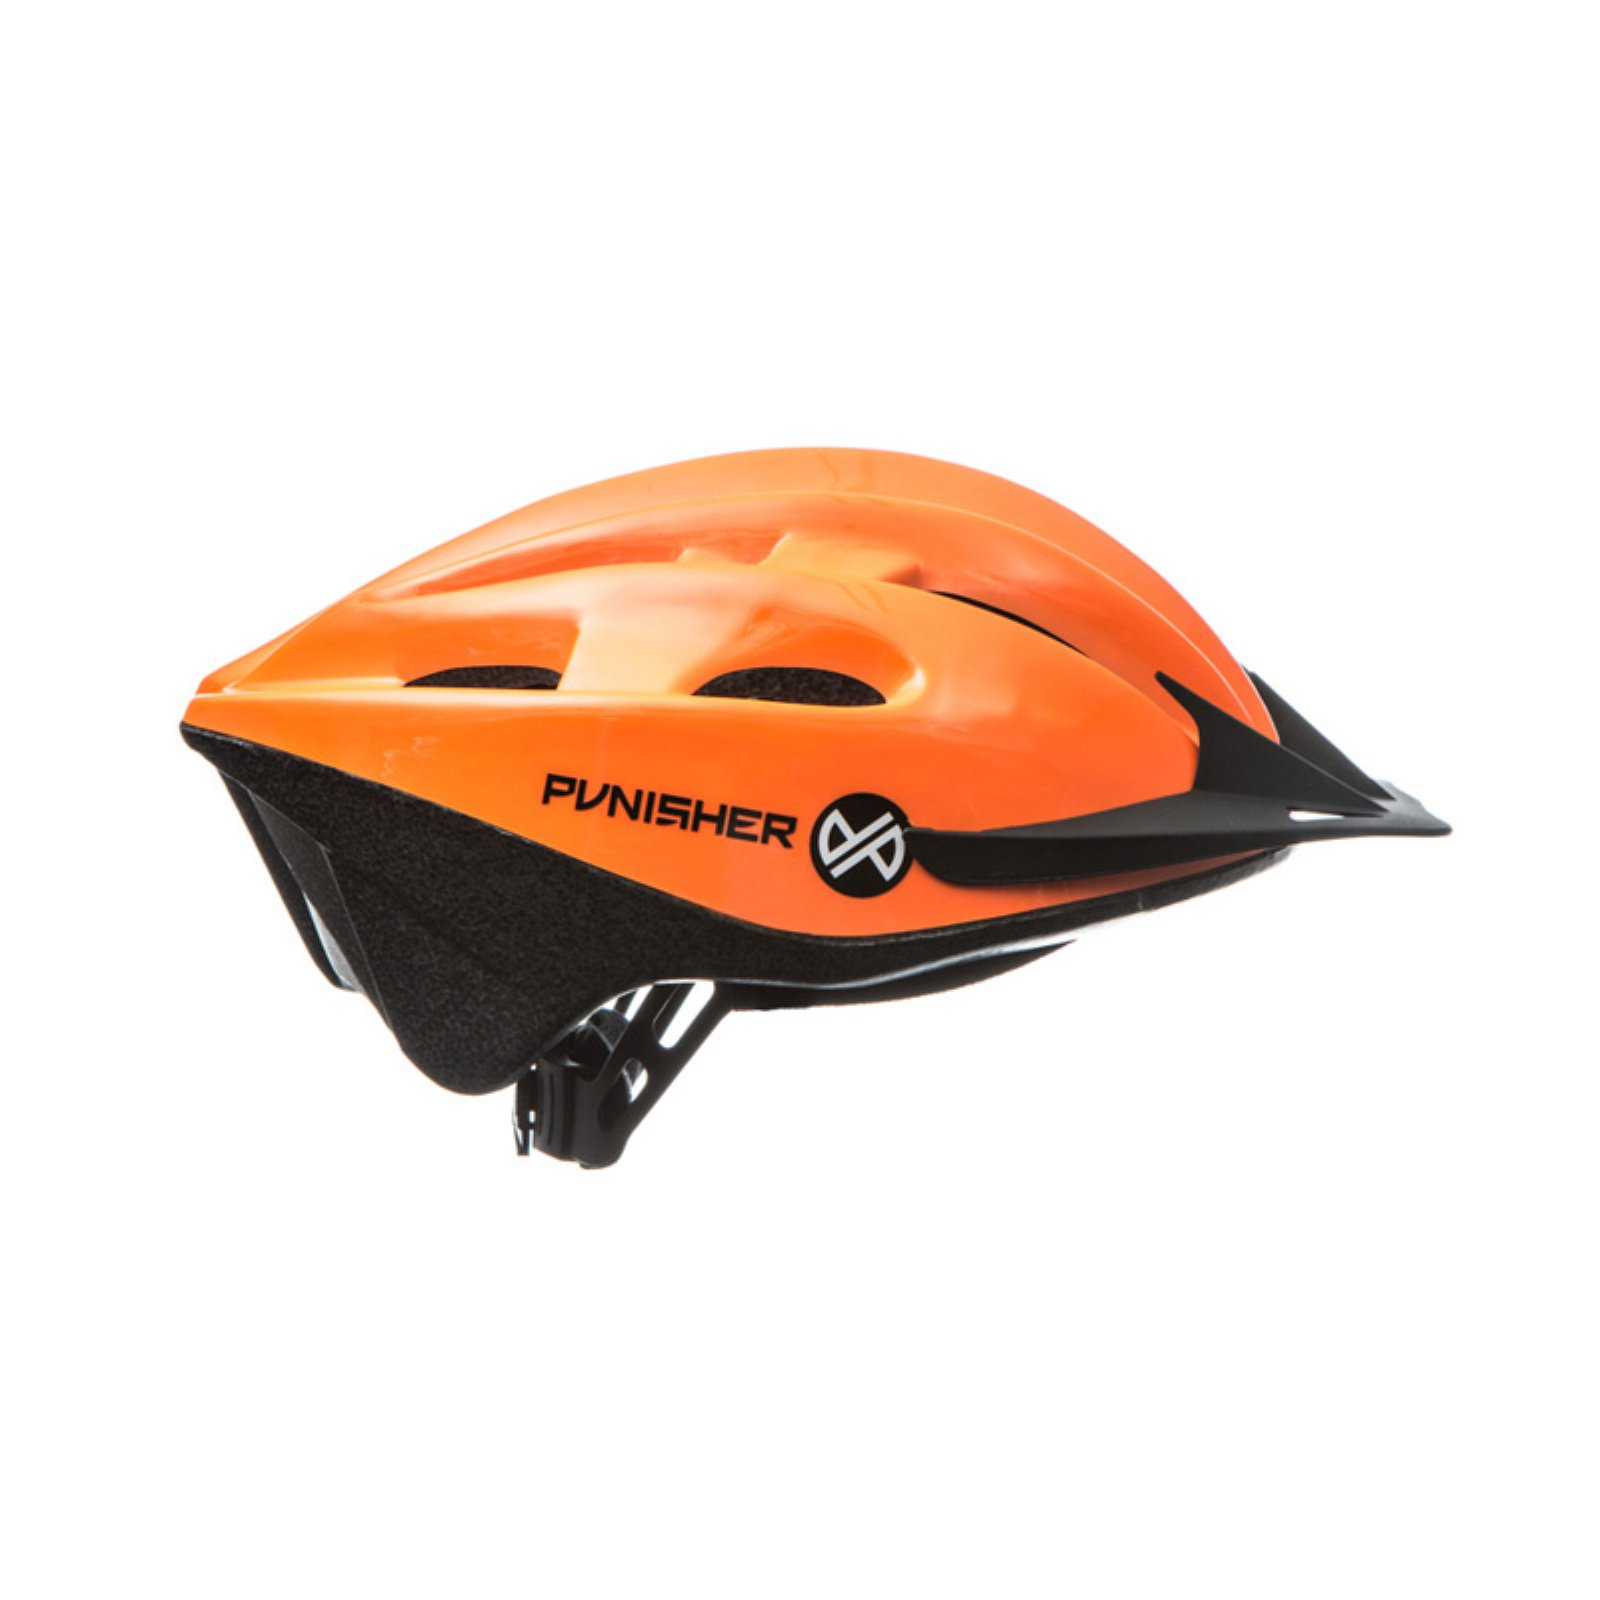 Punisher 18-Vent Adult Cycling Helmet, Bright Orange by Punisher Skateboards